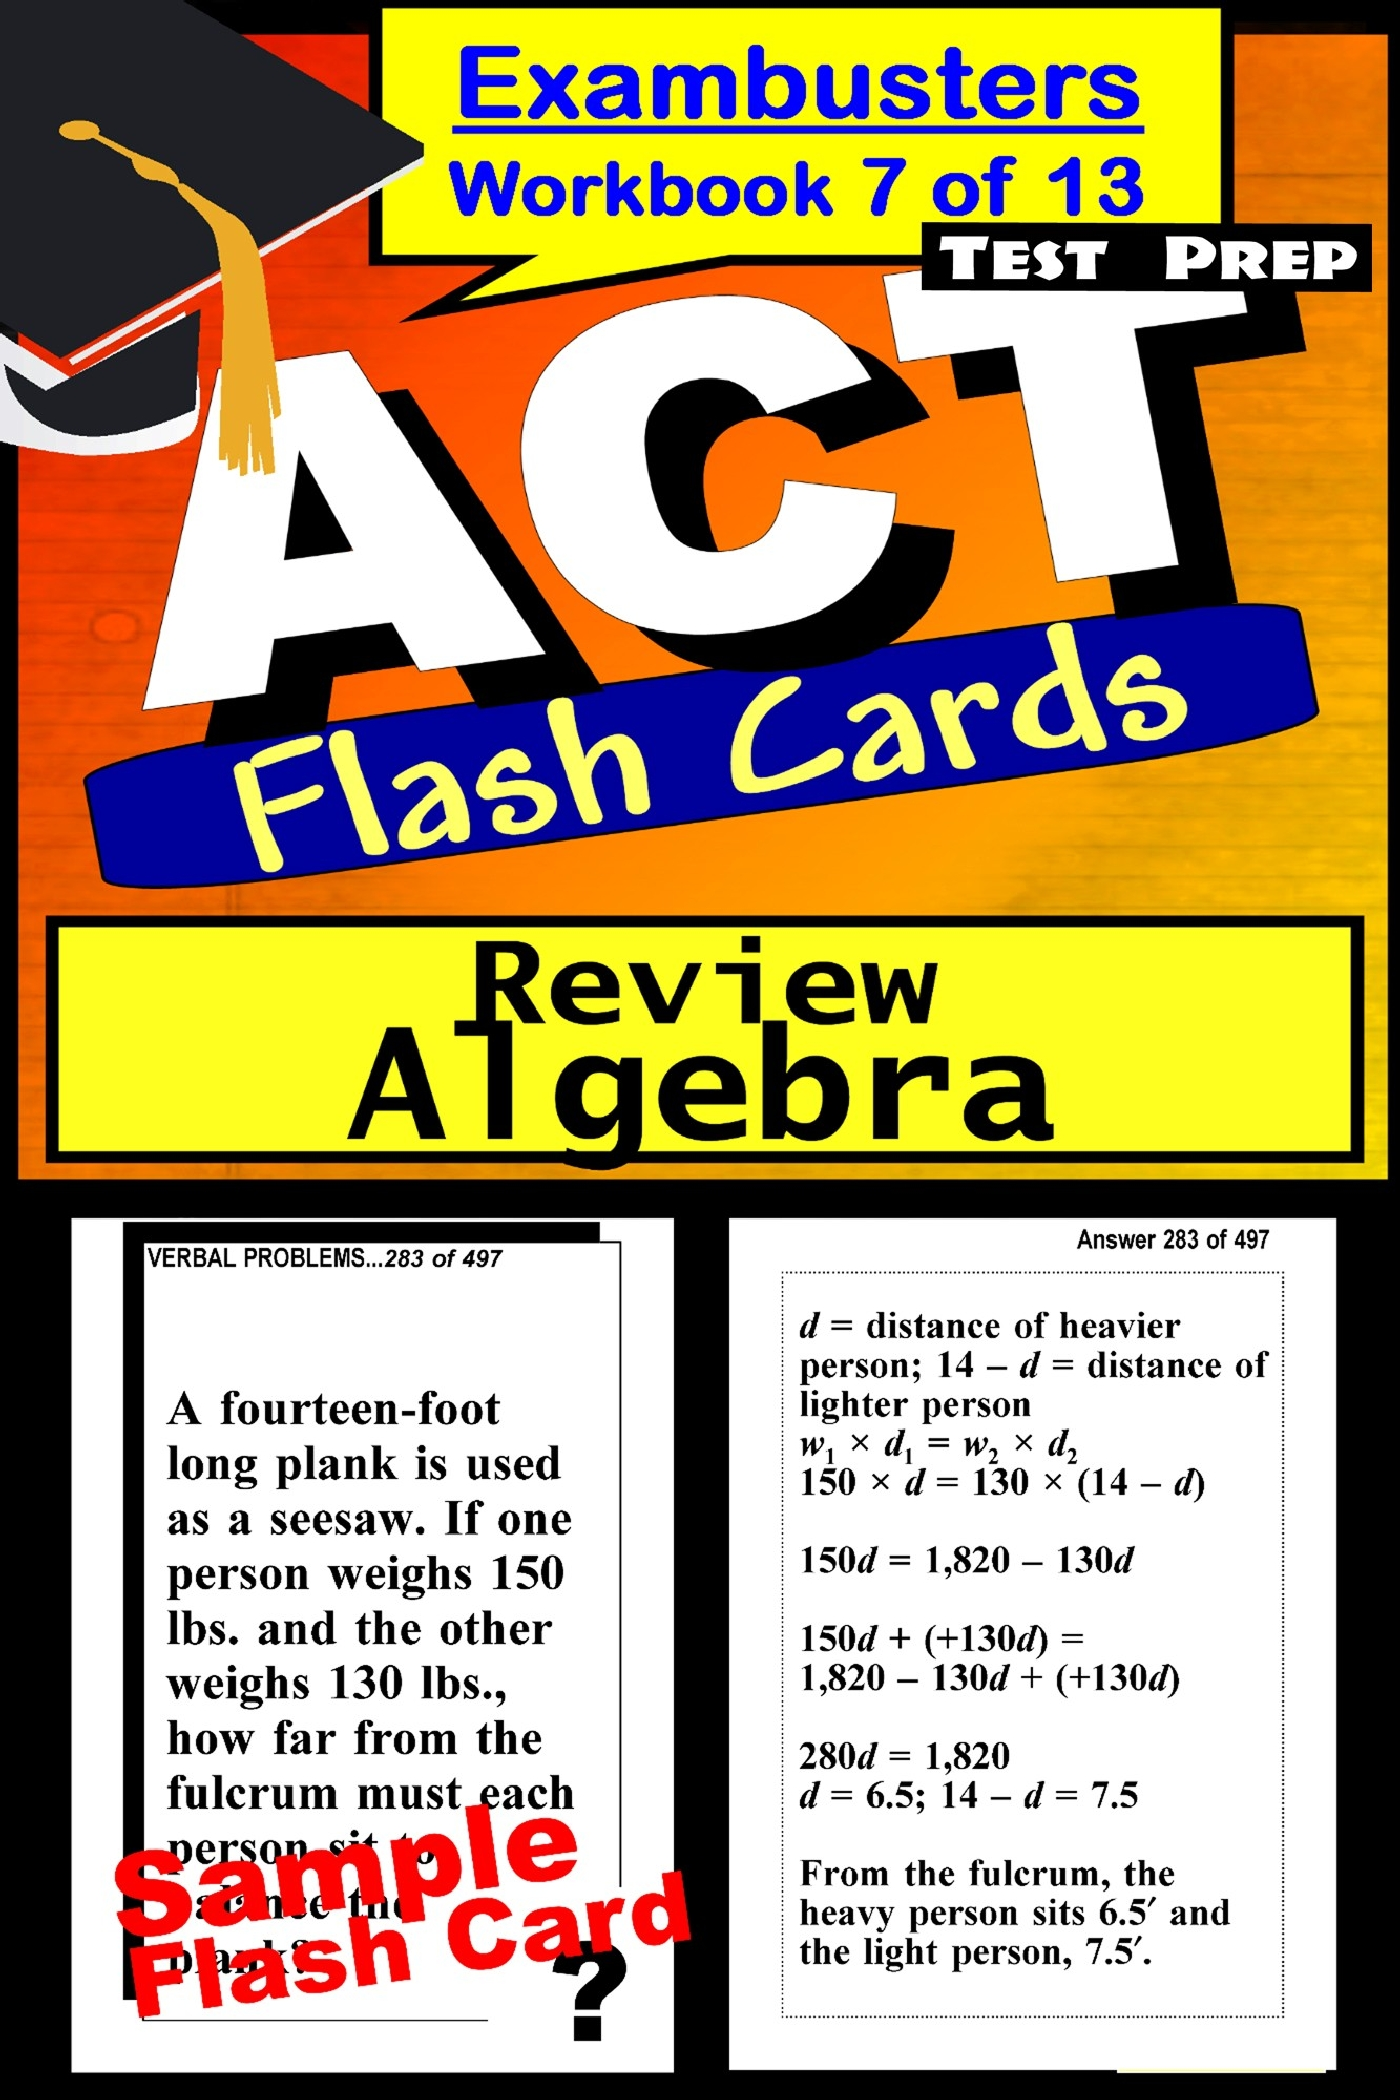 ACT Test Prep Algebra Review--Exambusters Flash Cards--Workbook 7 of 13: ACT Exam Study Guide